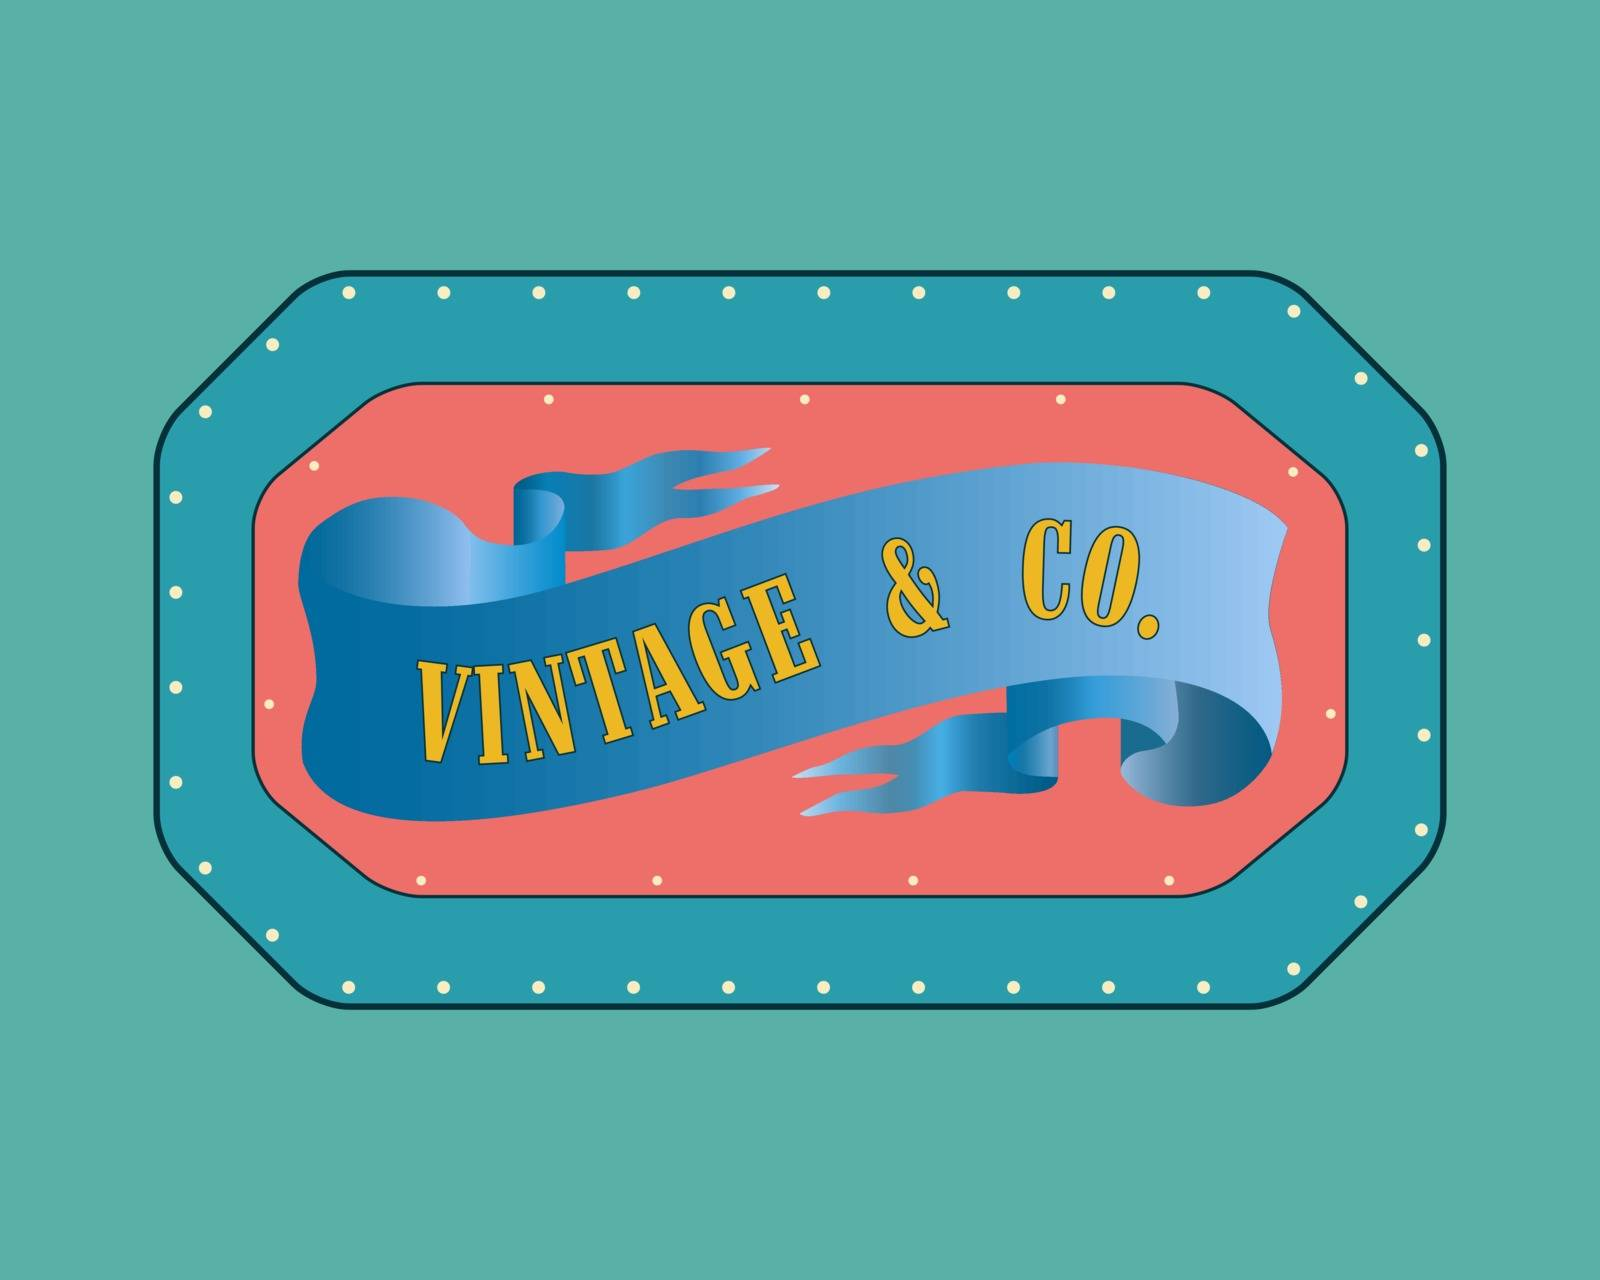 Retro style  badge, vintage collection. Vintage &Co